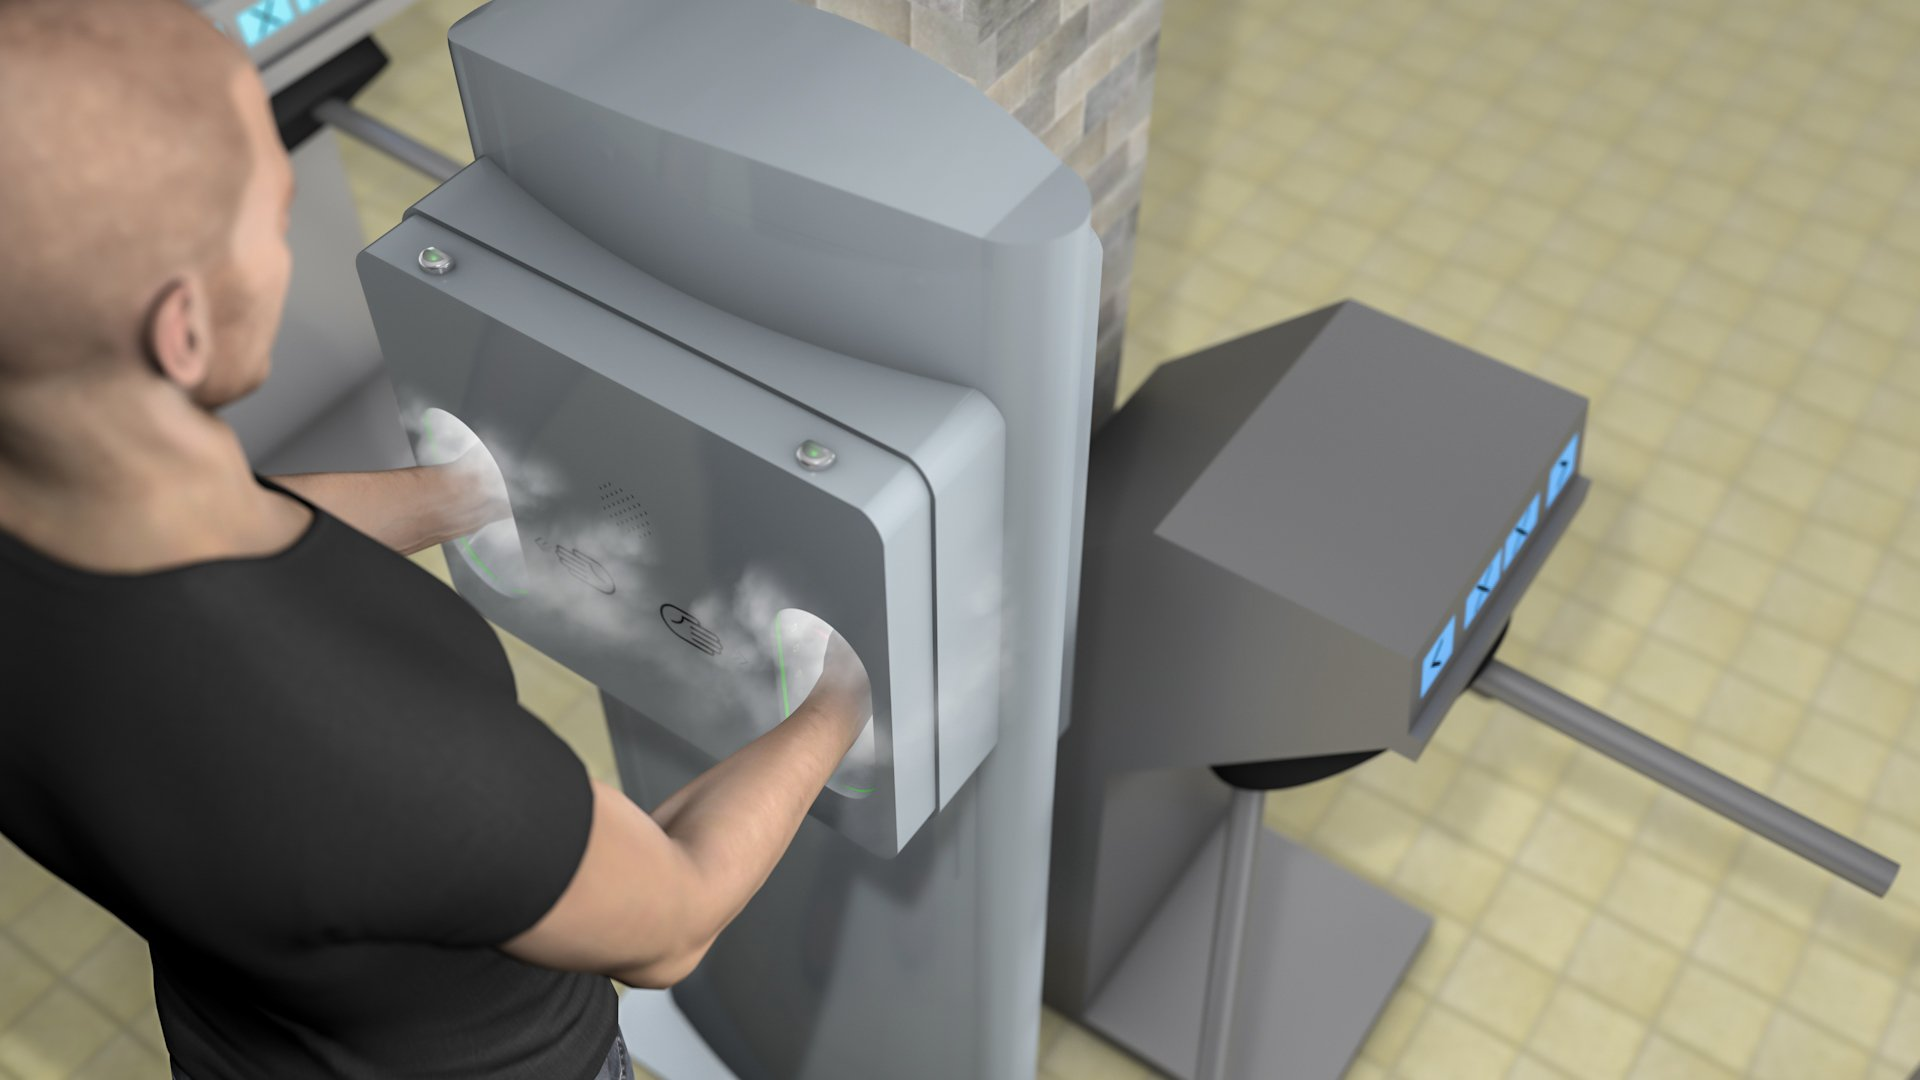 wenglor sensoric - Palm Detection in Disinfectant Dispenser by Reflex Sensors